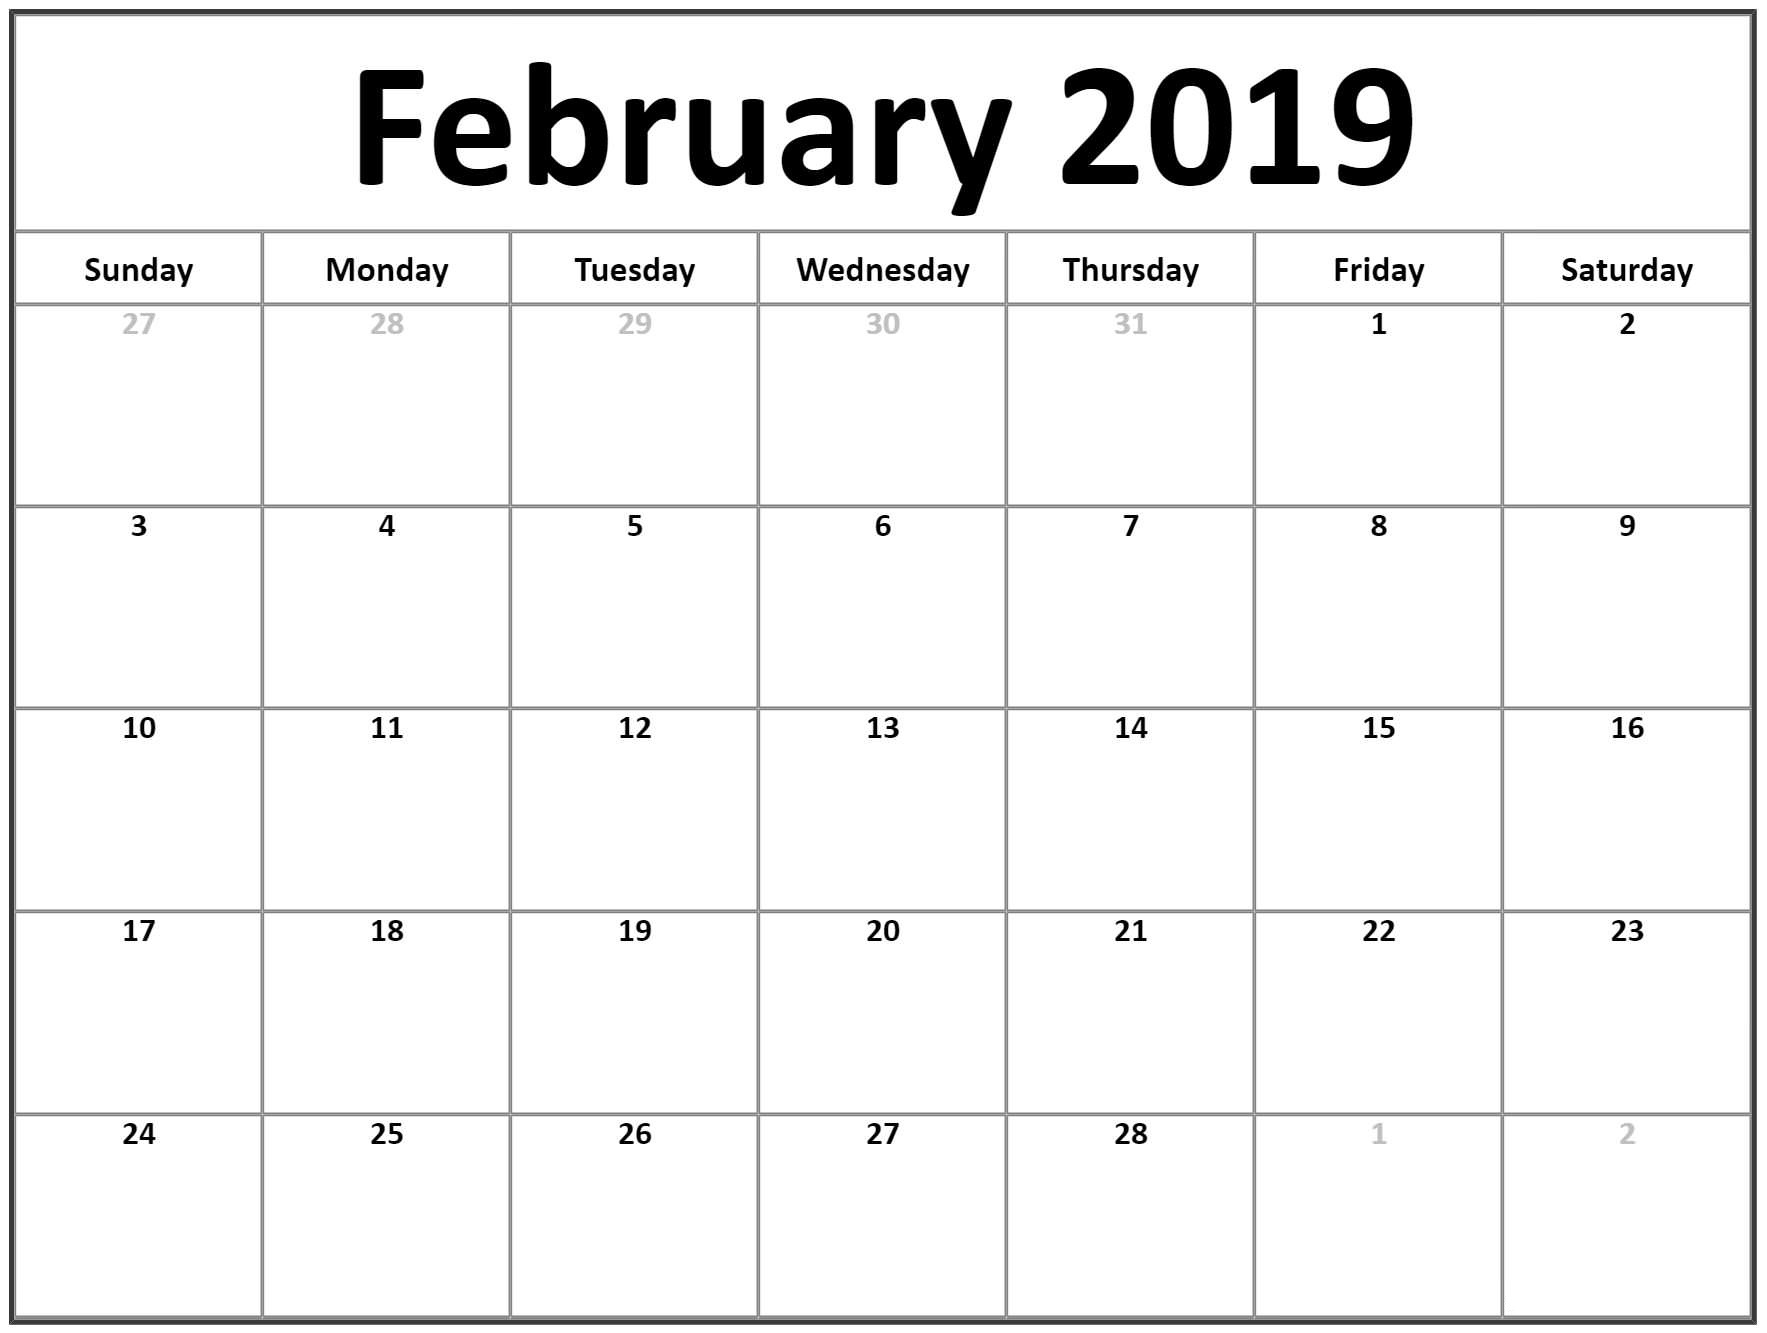 download february 2019 calendar with holidays blank calendar 2019 February 2019 Calendar erdferdf